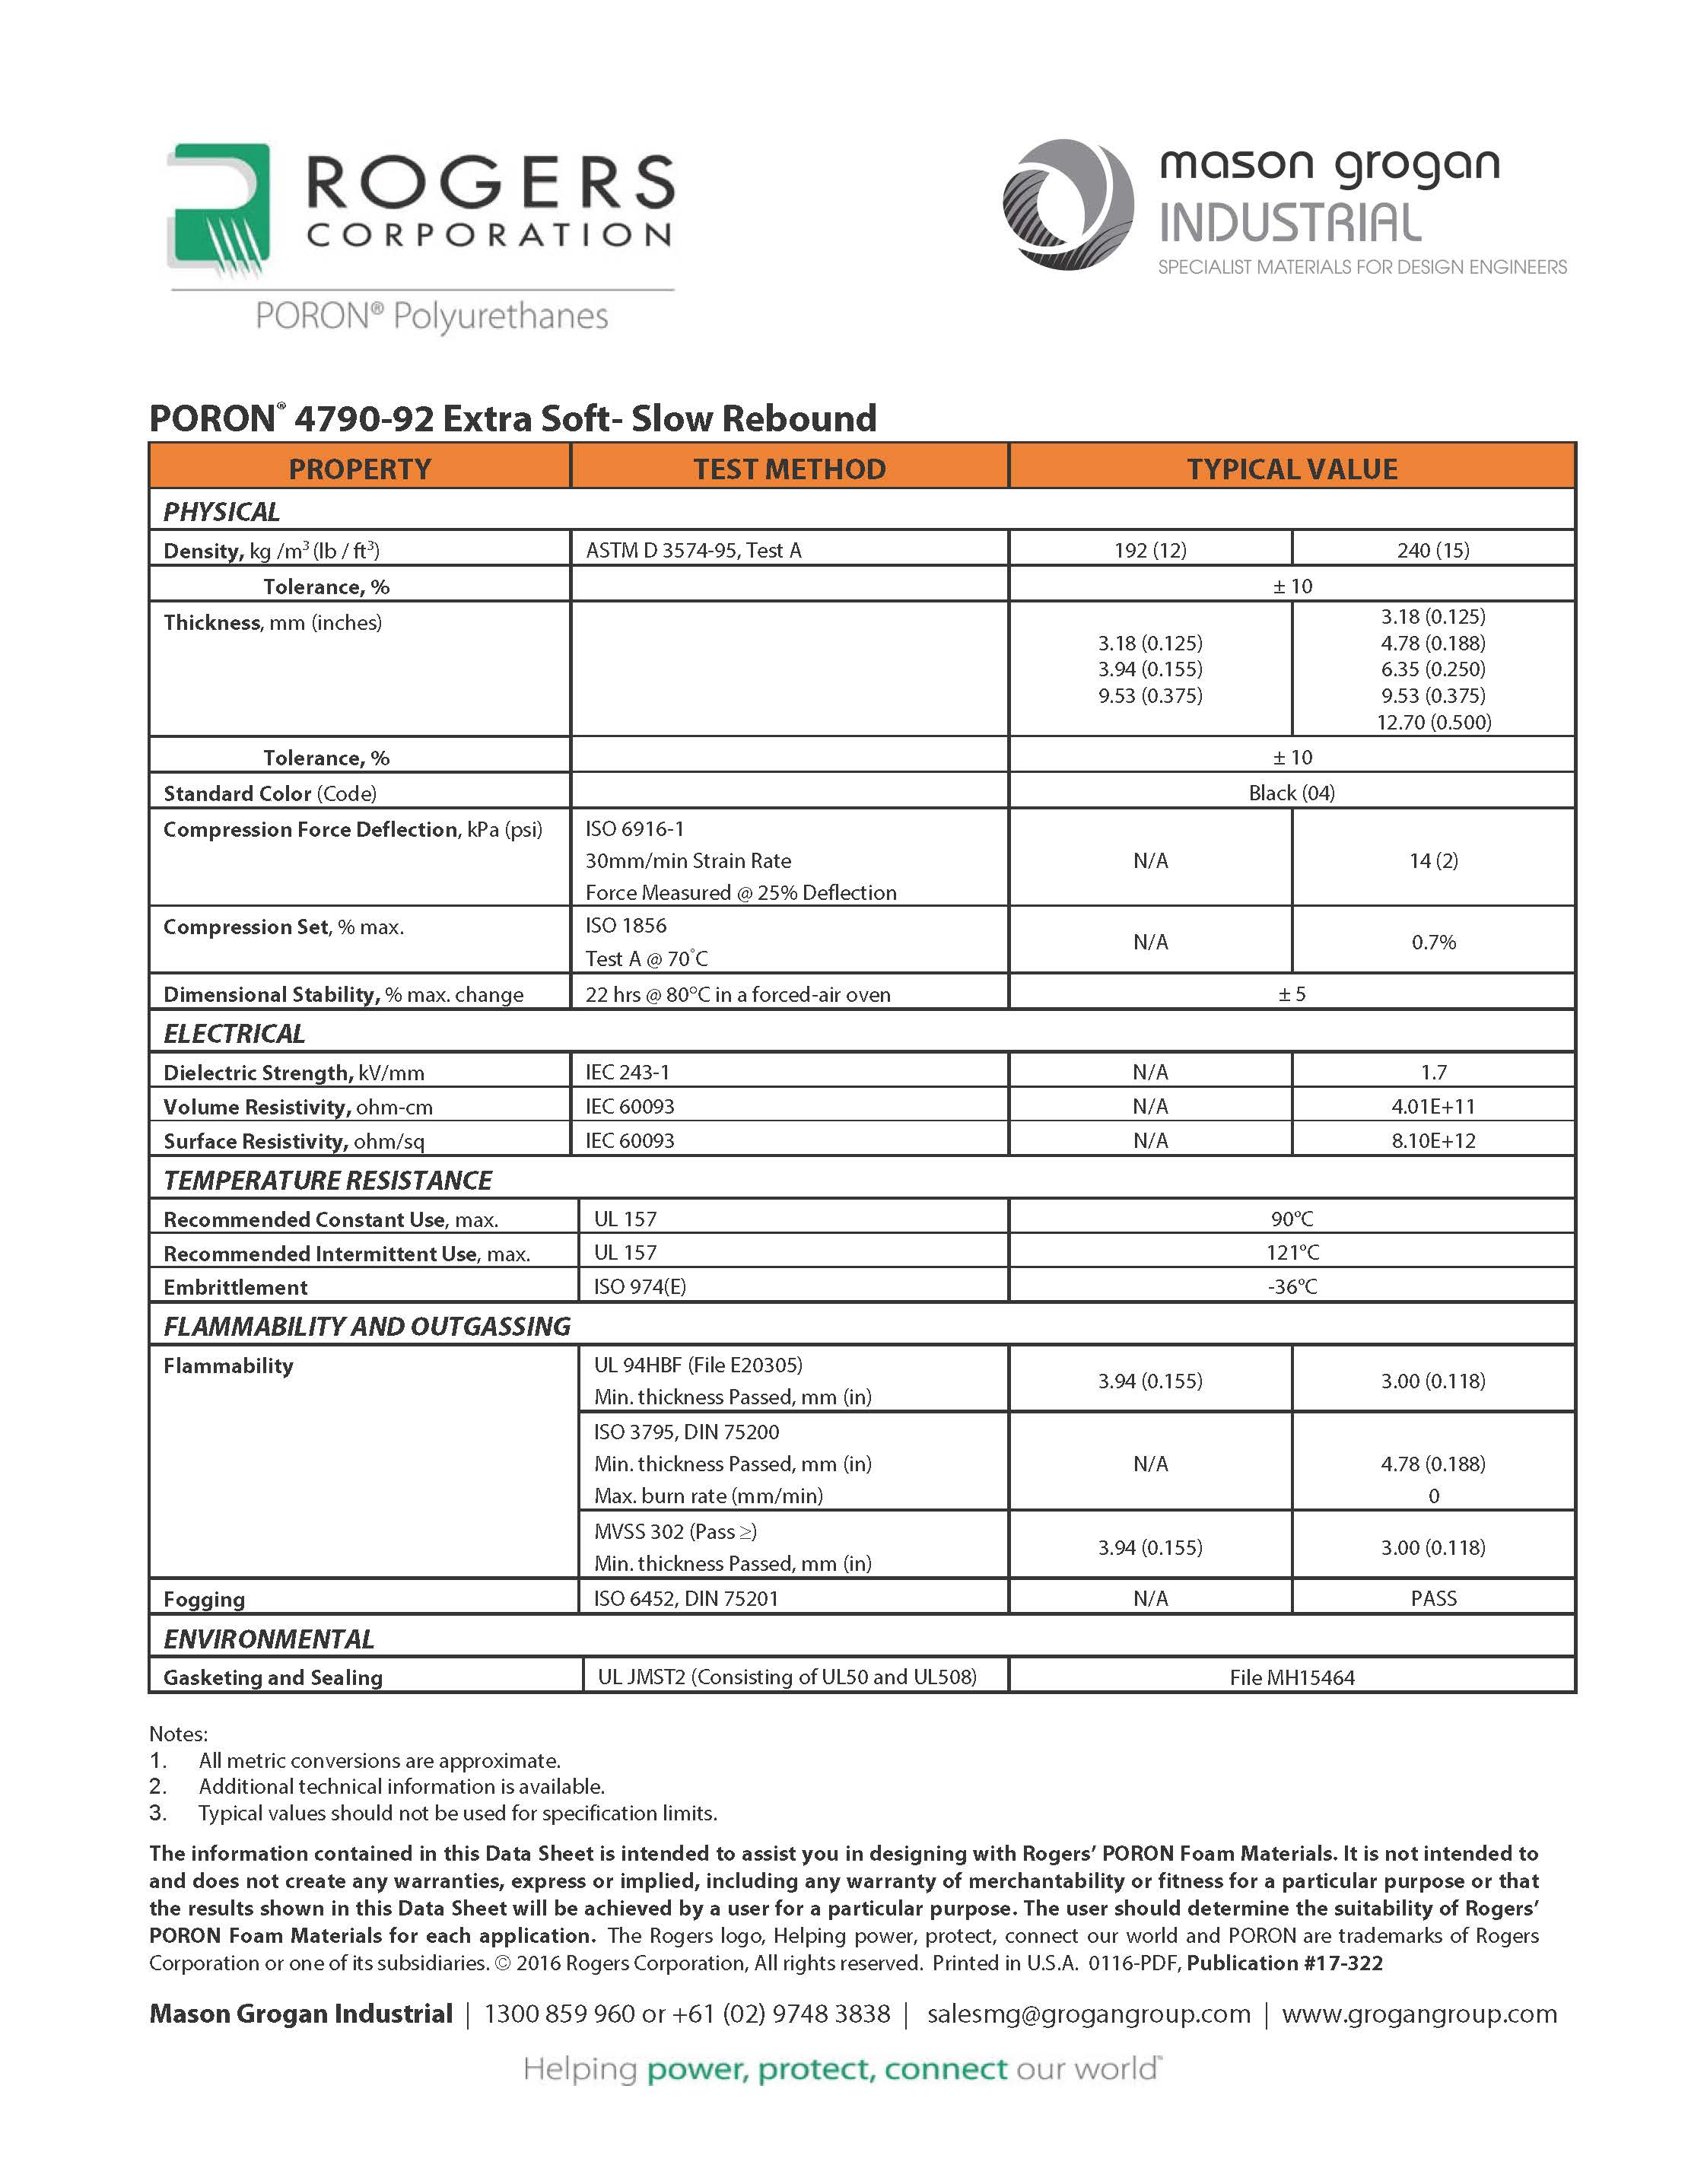 PORON® 4790-92 Extra-Soft Slow-Rebound Global Standards Data-Sheet